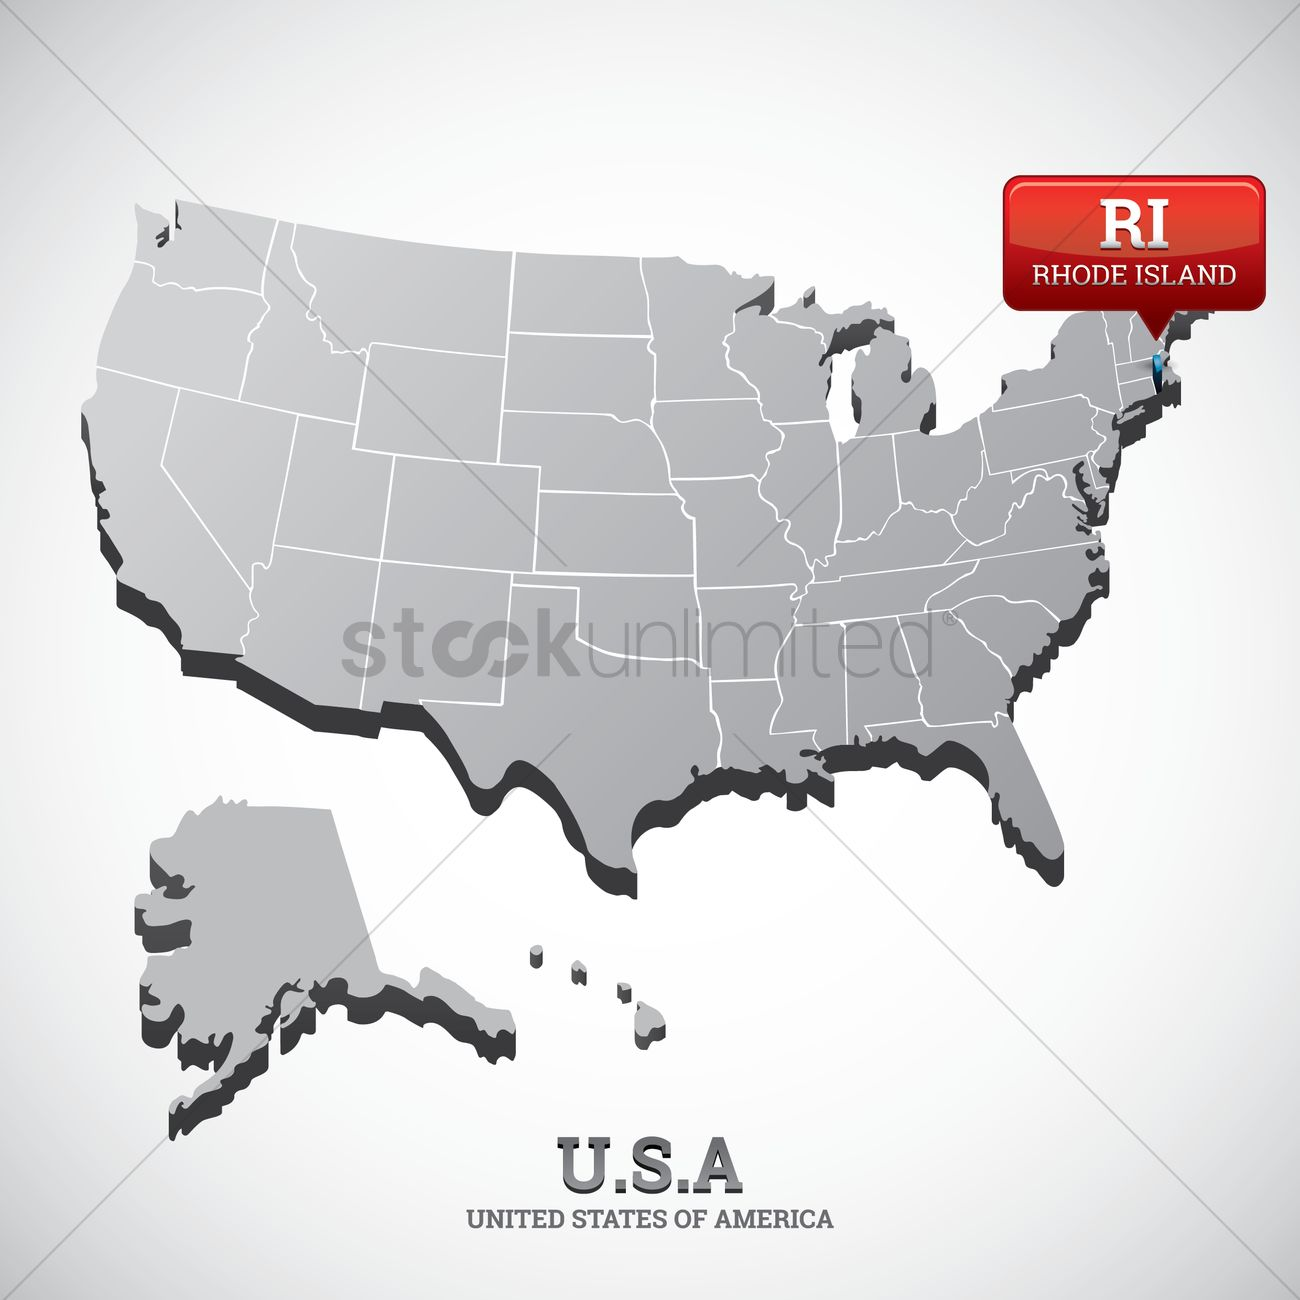 Rhode island state on the map of usa Vector Image - 1532682 ...